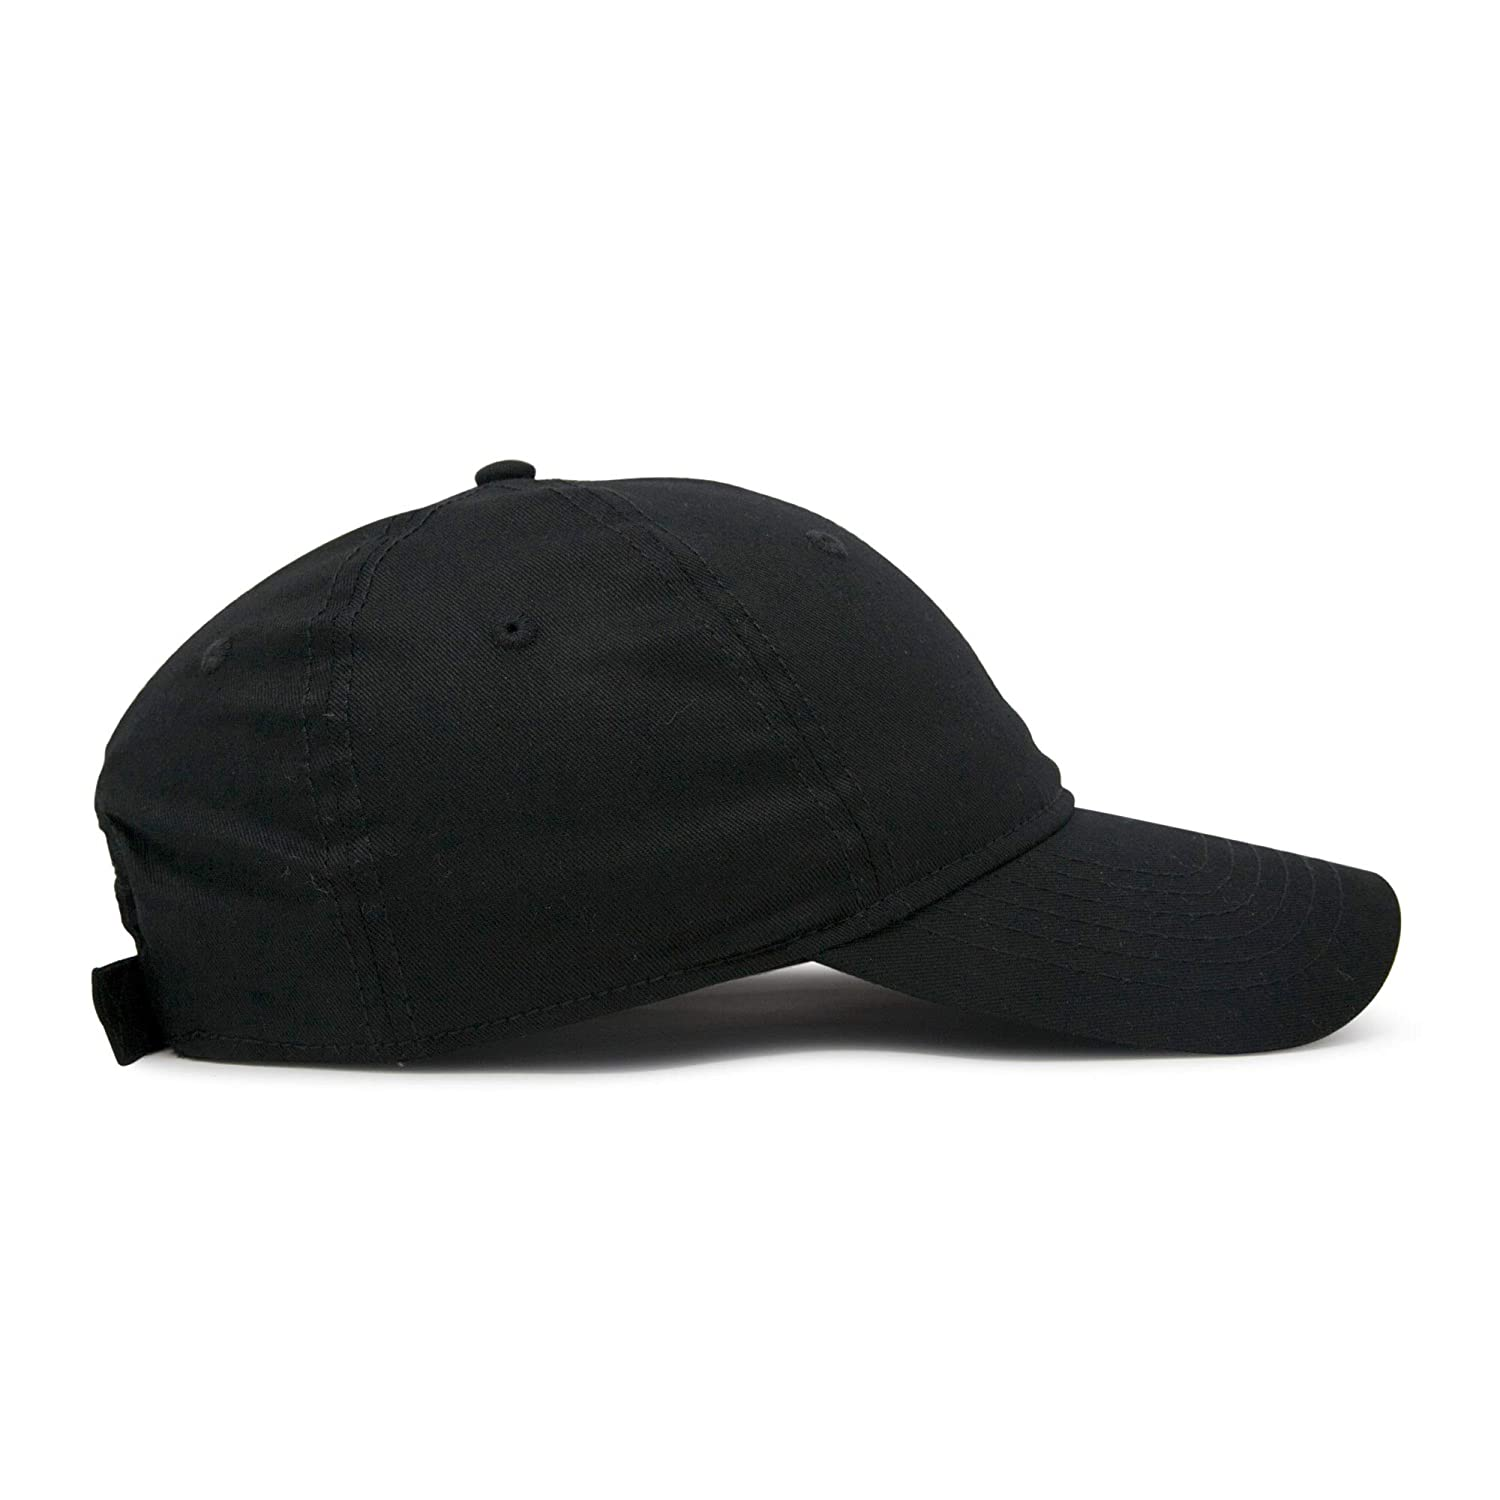 46be0ce0d7ce0 Amazon.com  DALIX Womens Hat Lightweight 100% Cotton Cap in Black  Clothing